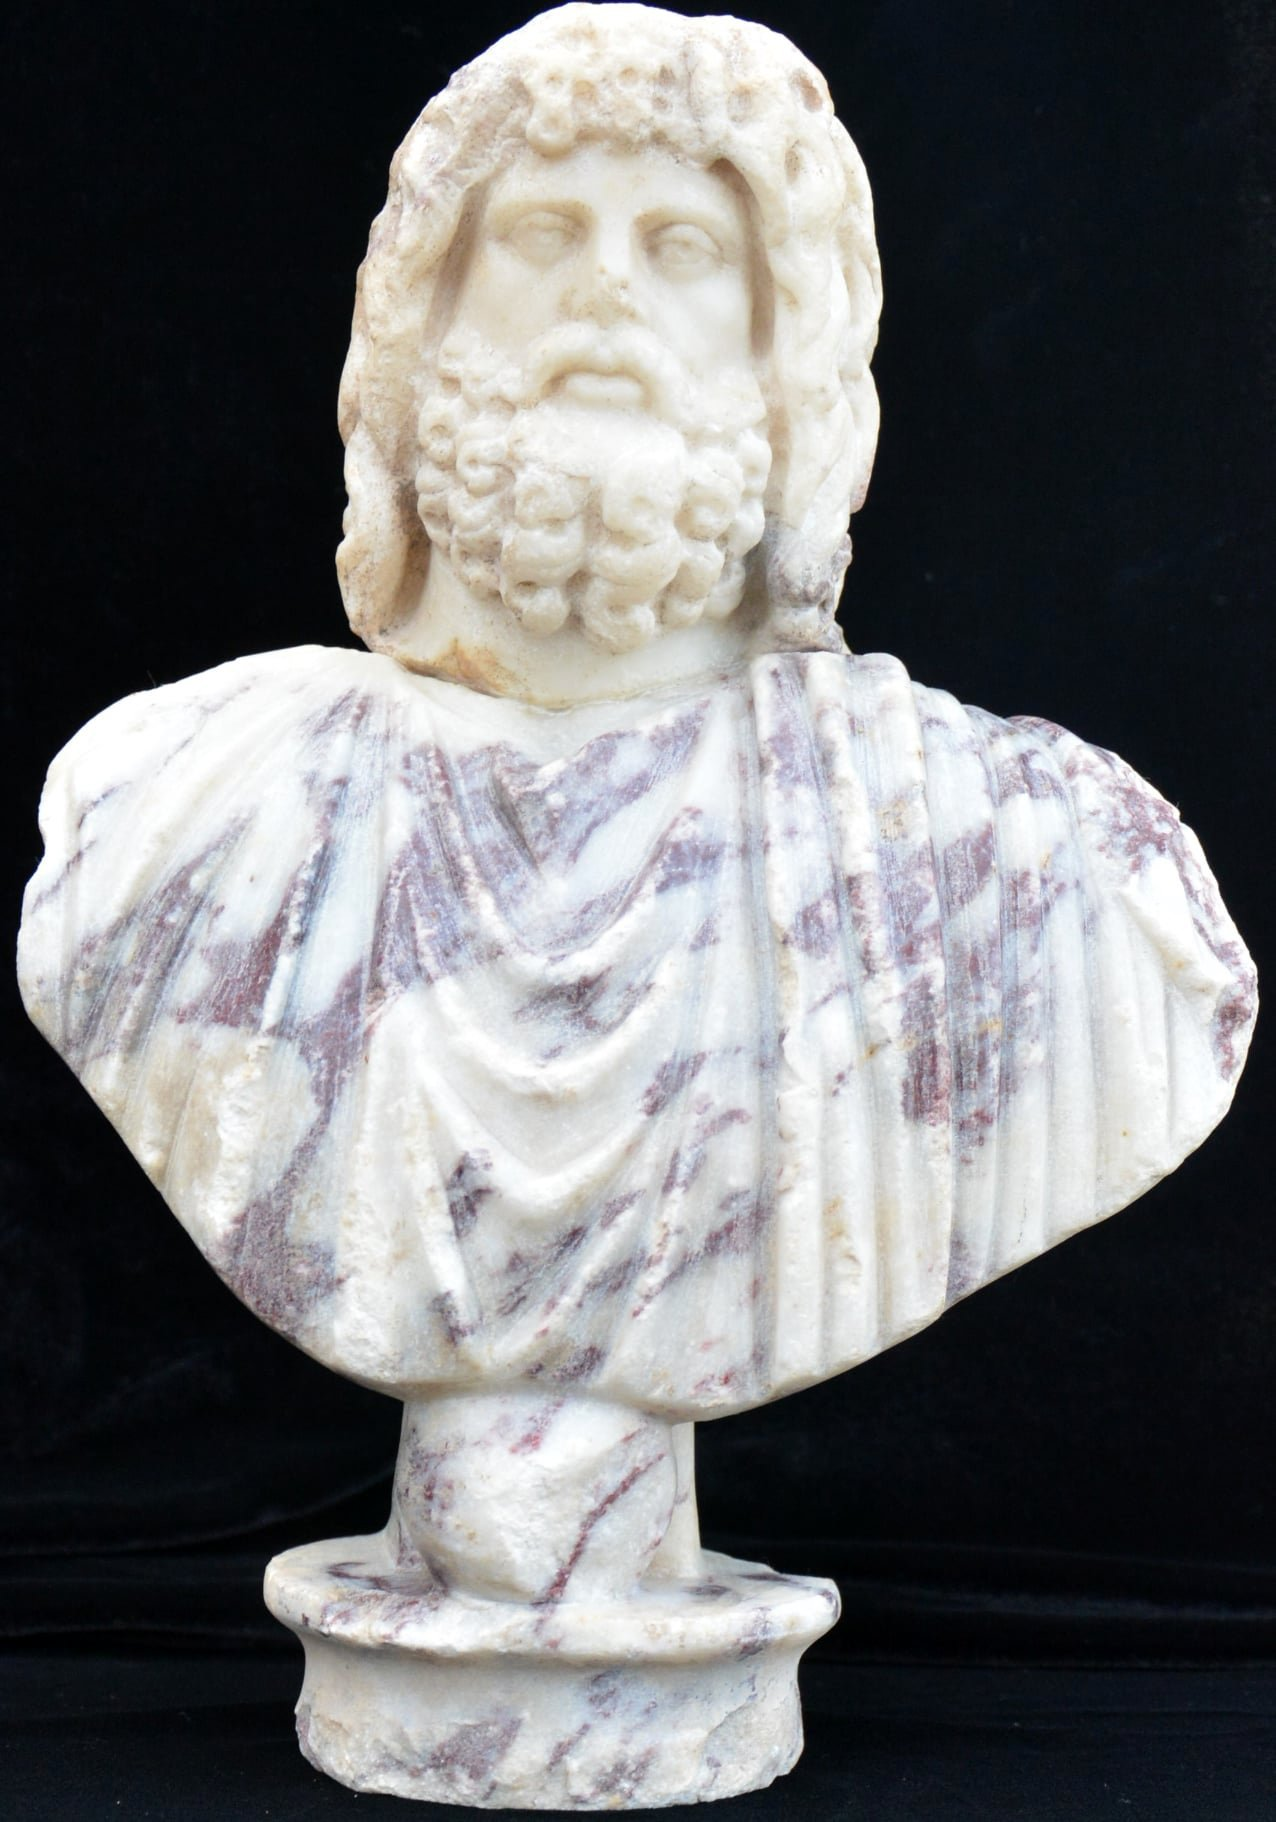 Alongside the statue, the head of the bust of Serapis, a Graeco-Egyptian deity, was also discovered andhas since been reunited with its body, Jan. 6, 2021. (DHA Photo)